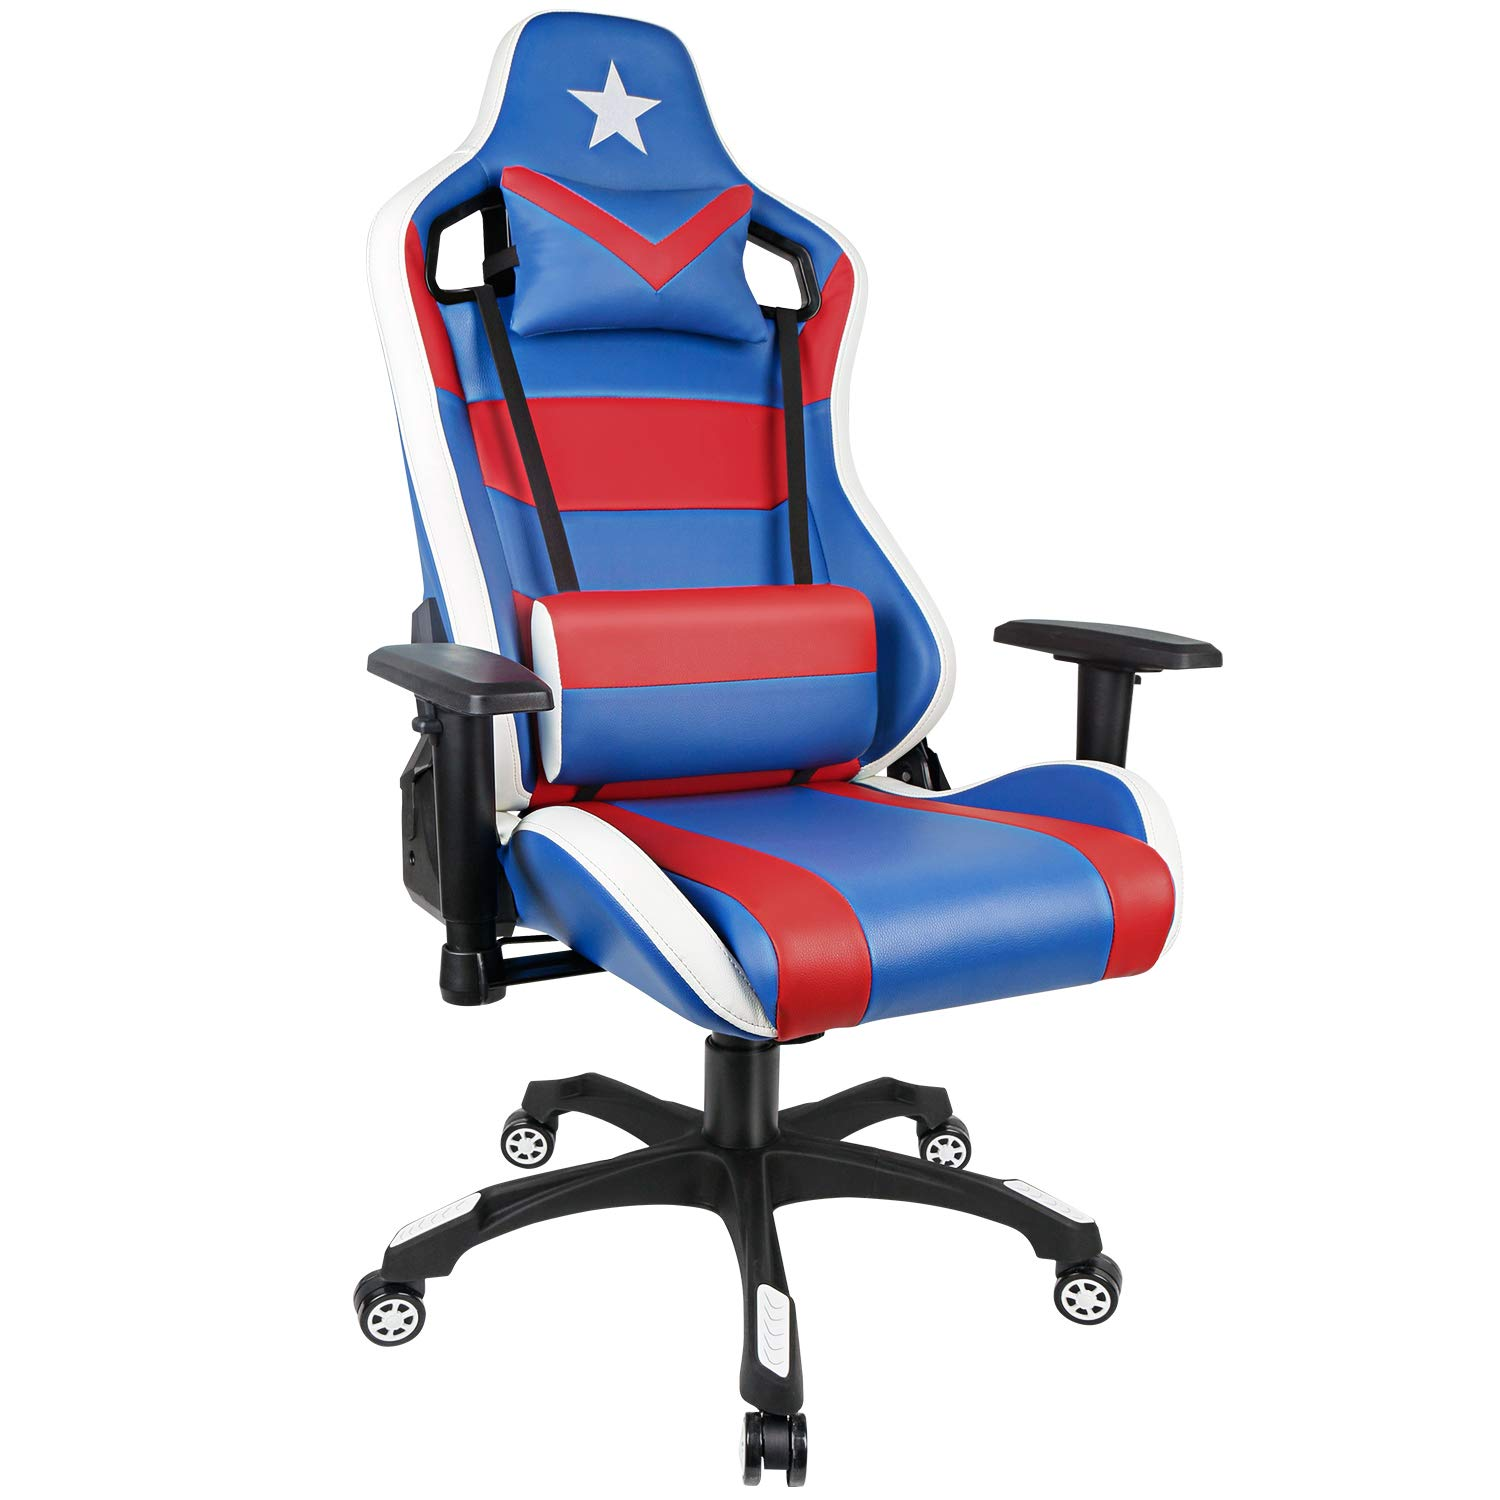 PC Gaming Chair High Back Racing Chair with Adjustable Armrest Blue Red USA Game Chair with Lumbar Support for Men and Women